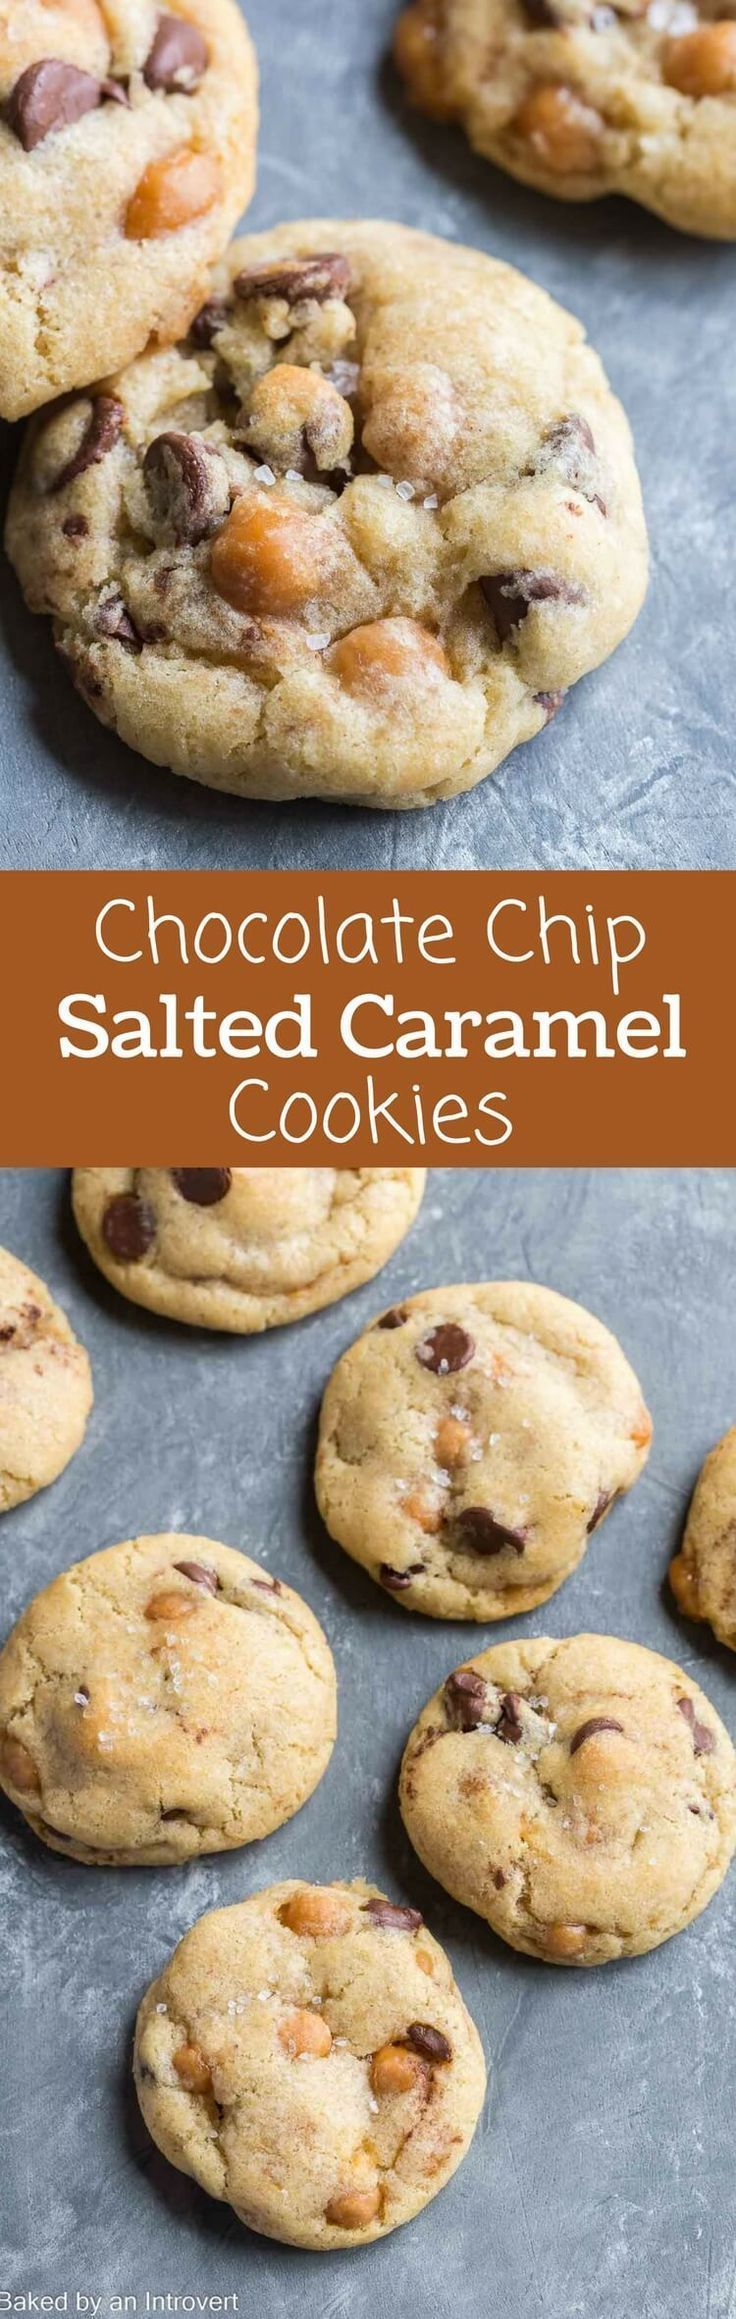 Soft and chewy Chocolate Chip Salted Caramel Cookies combine everyone's favorite flavors!  via /introvertbaker/